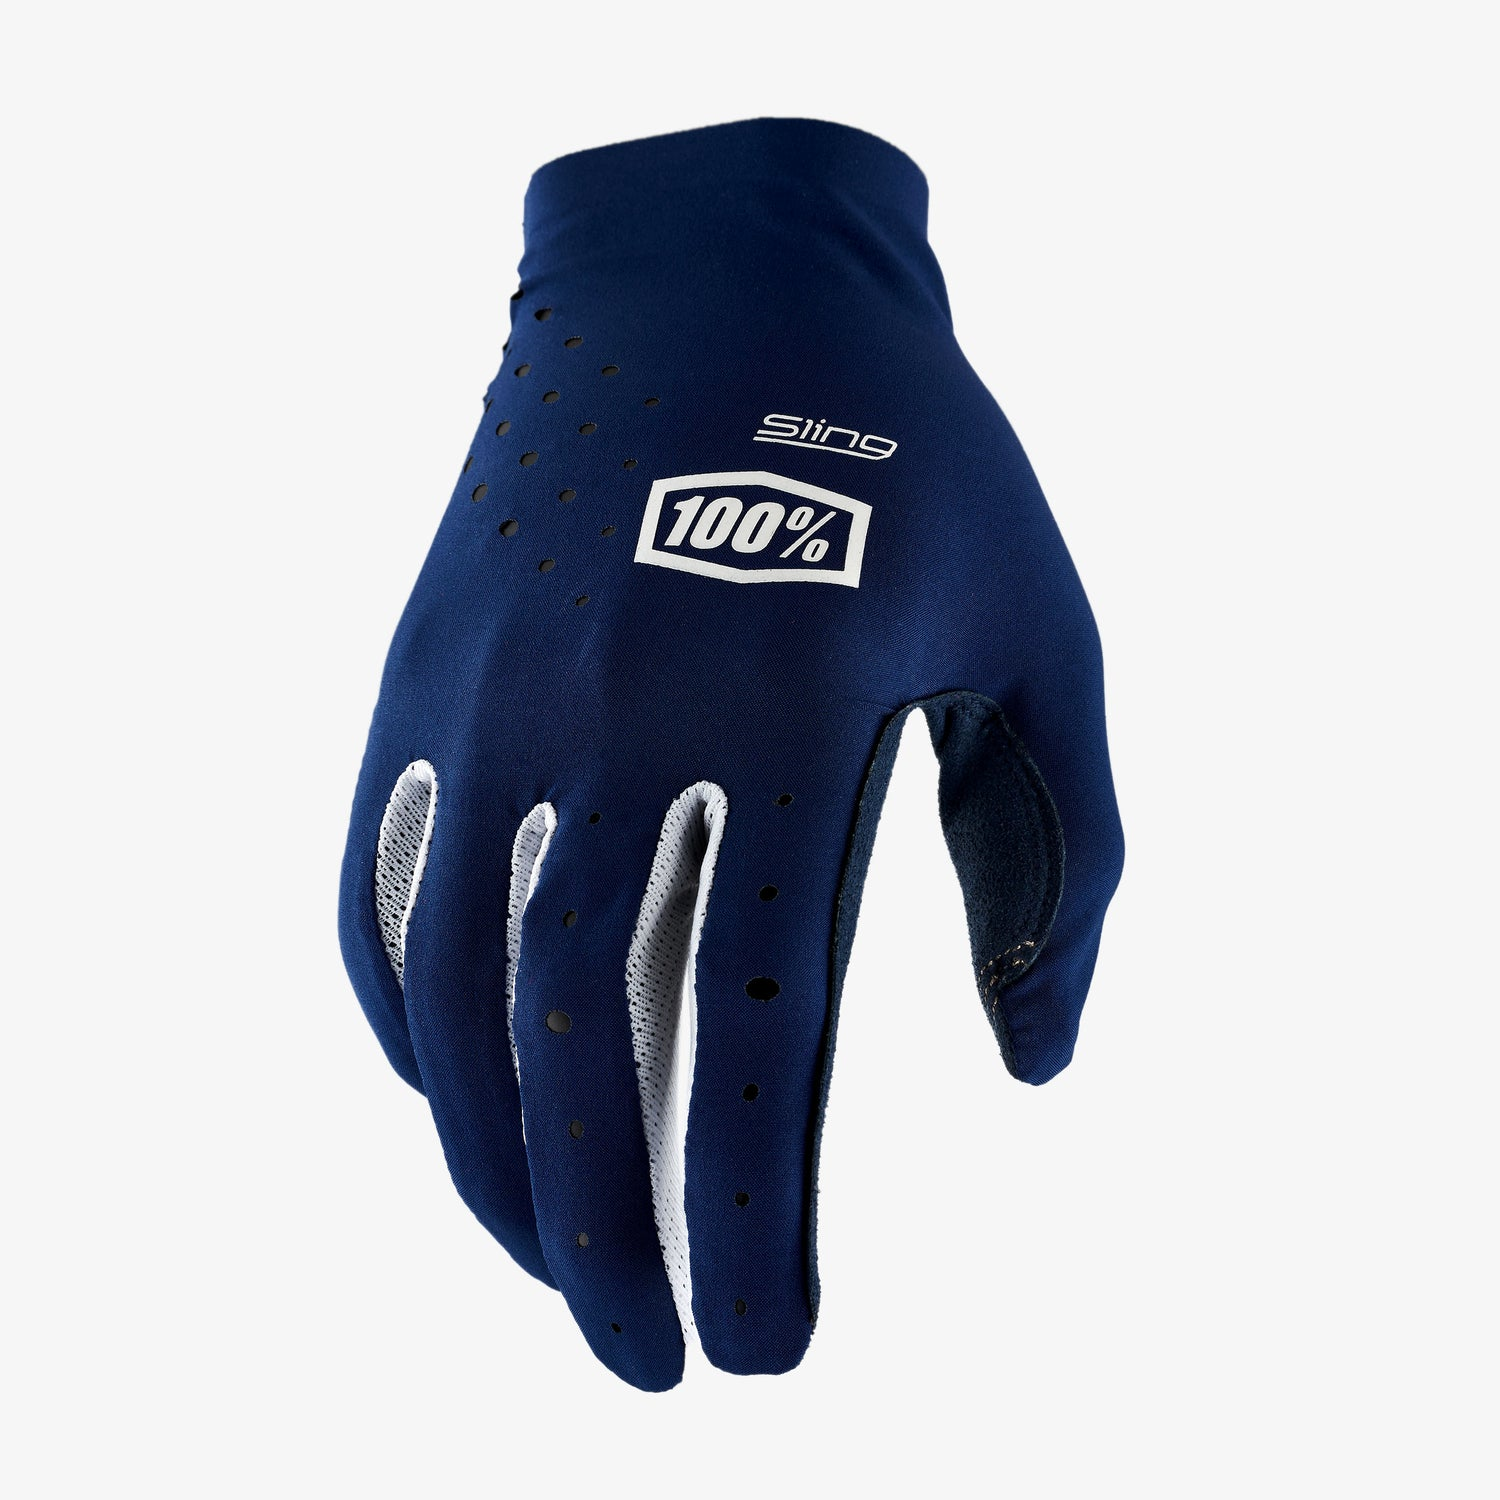 SLING MX Gloves Navy